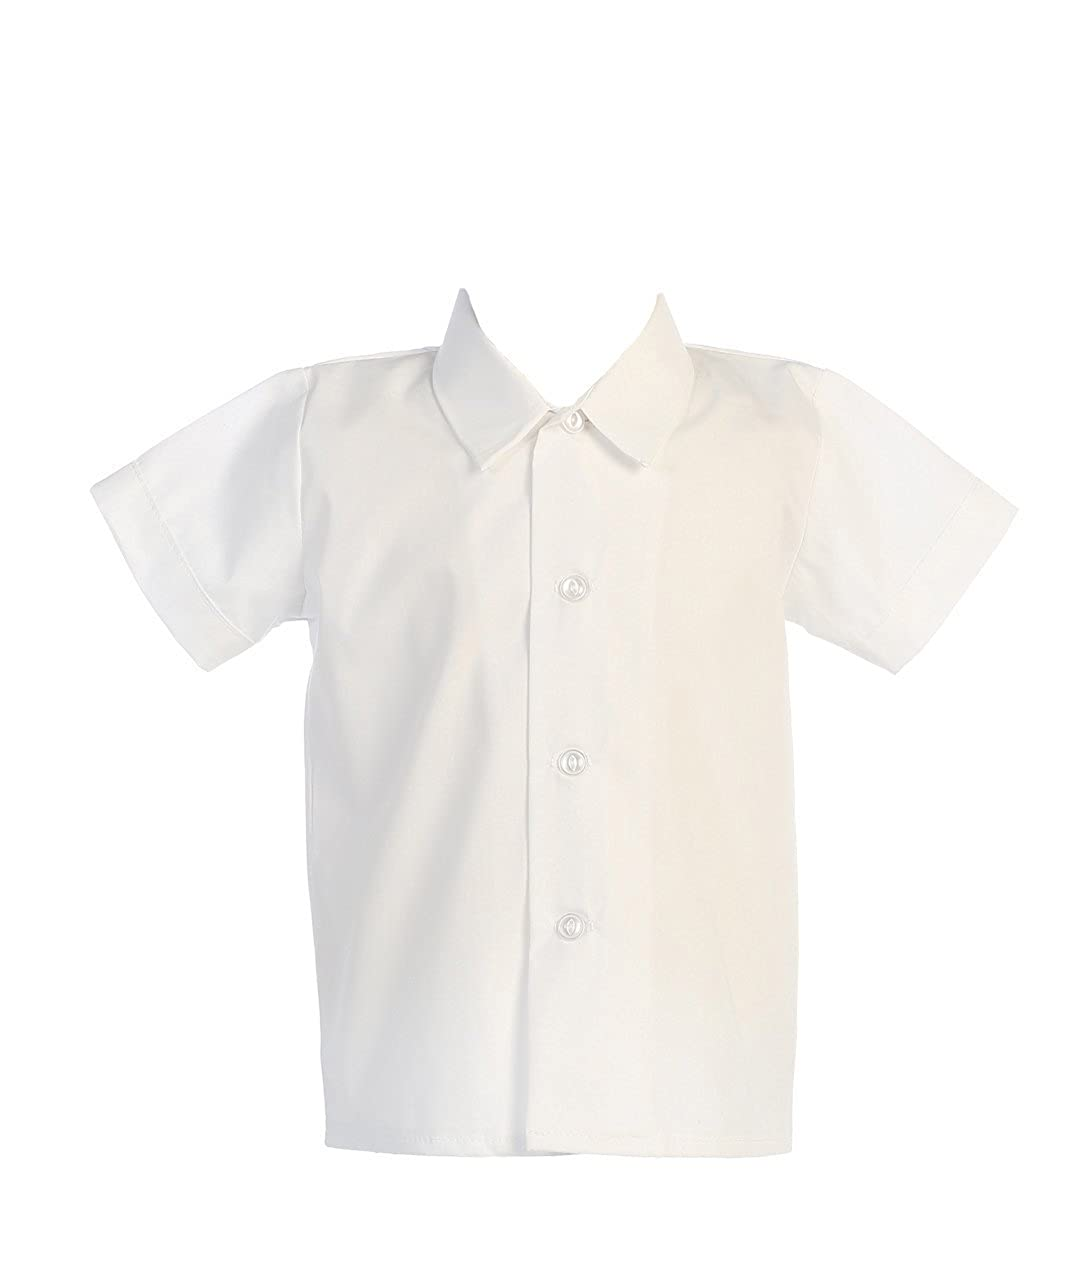 Infant to Toddler Lito Baby Boys Short Sleeved Simple Dress Shirt White or Ivory